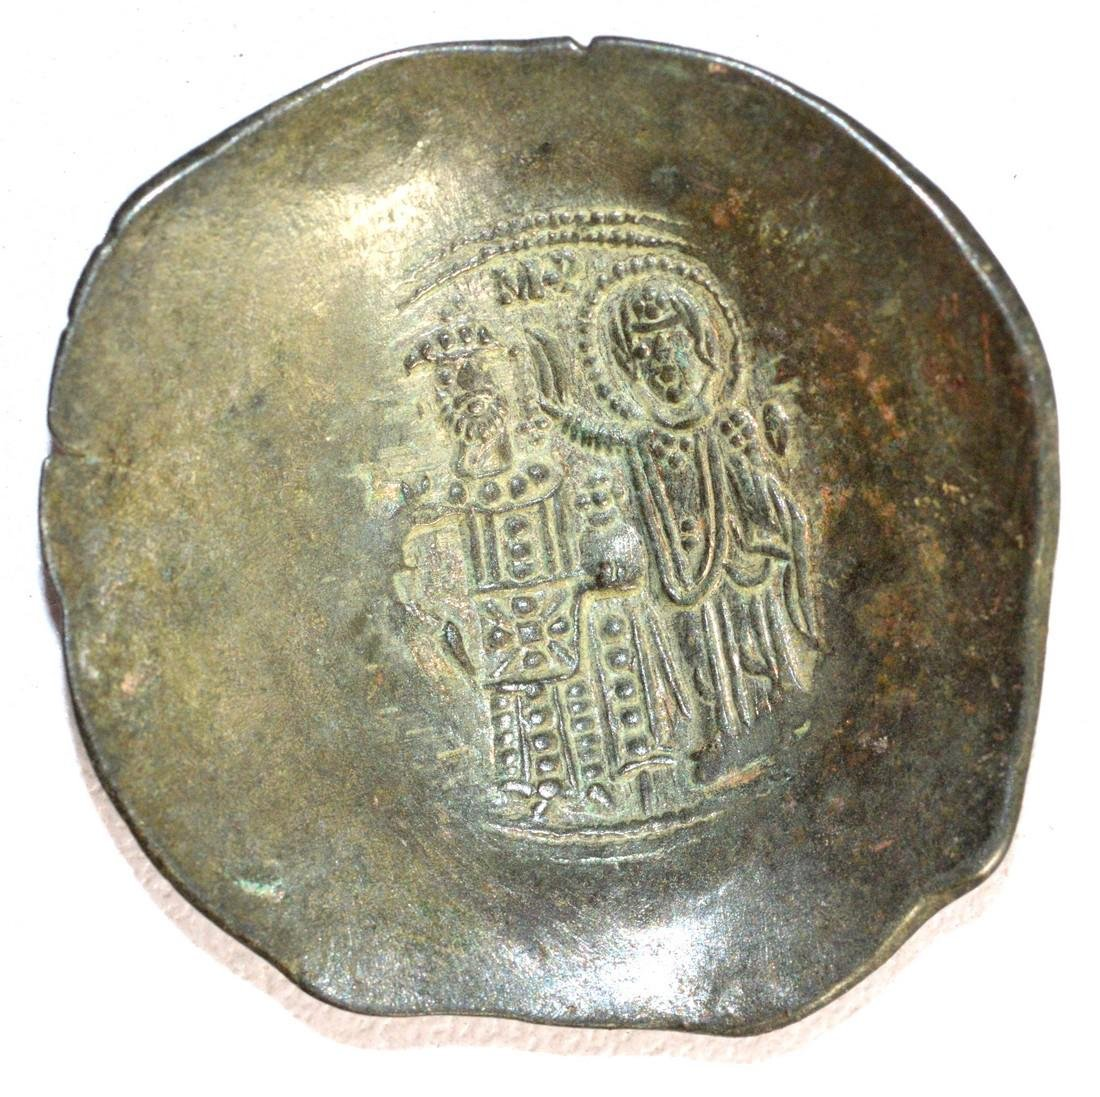 Byzantine Empire Billon Cup Coin - Aspron - 2